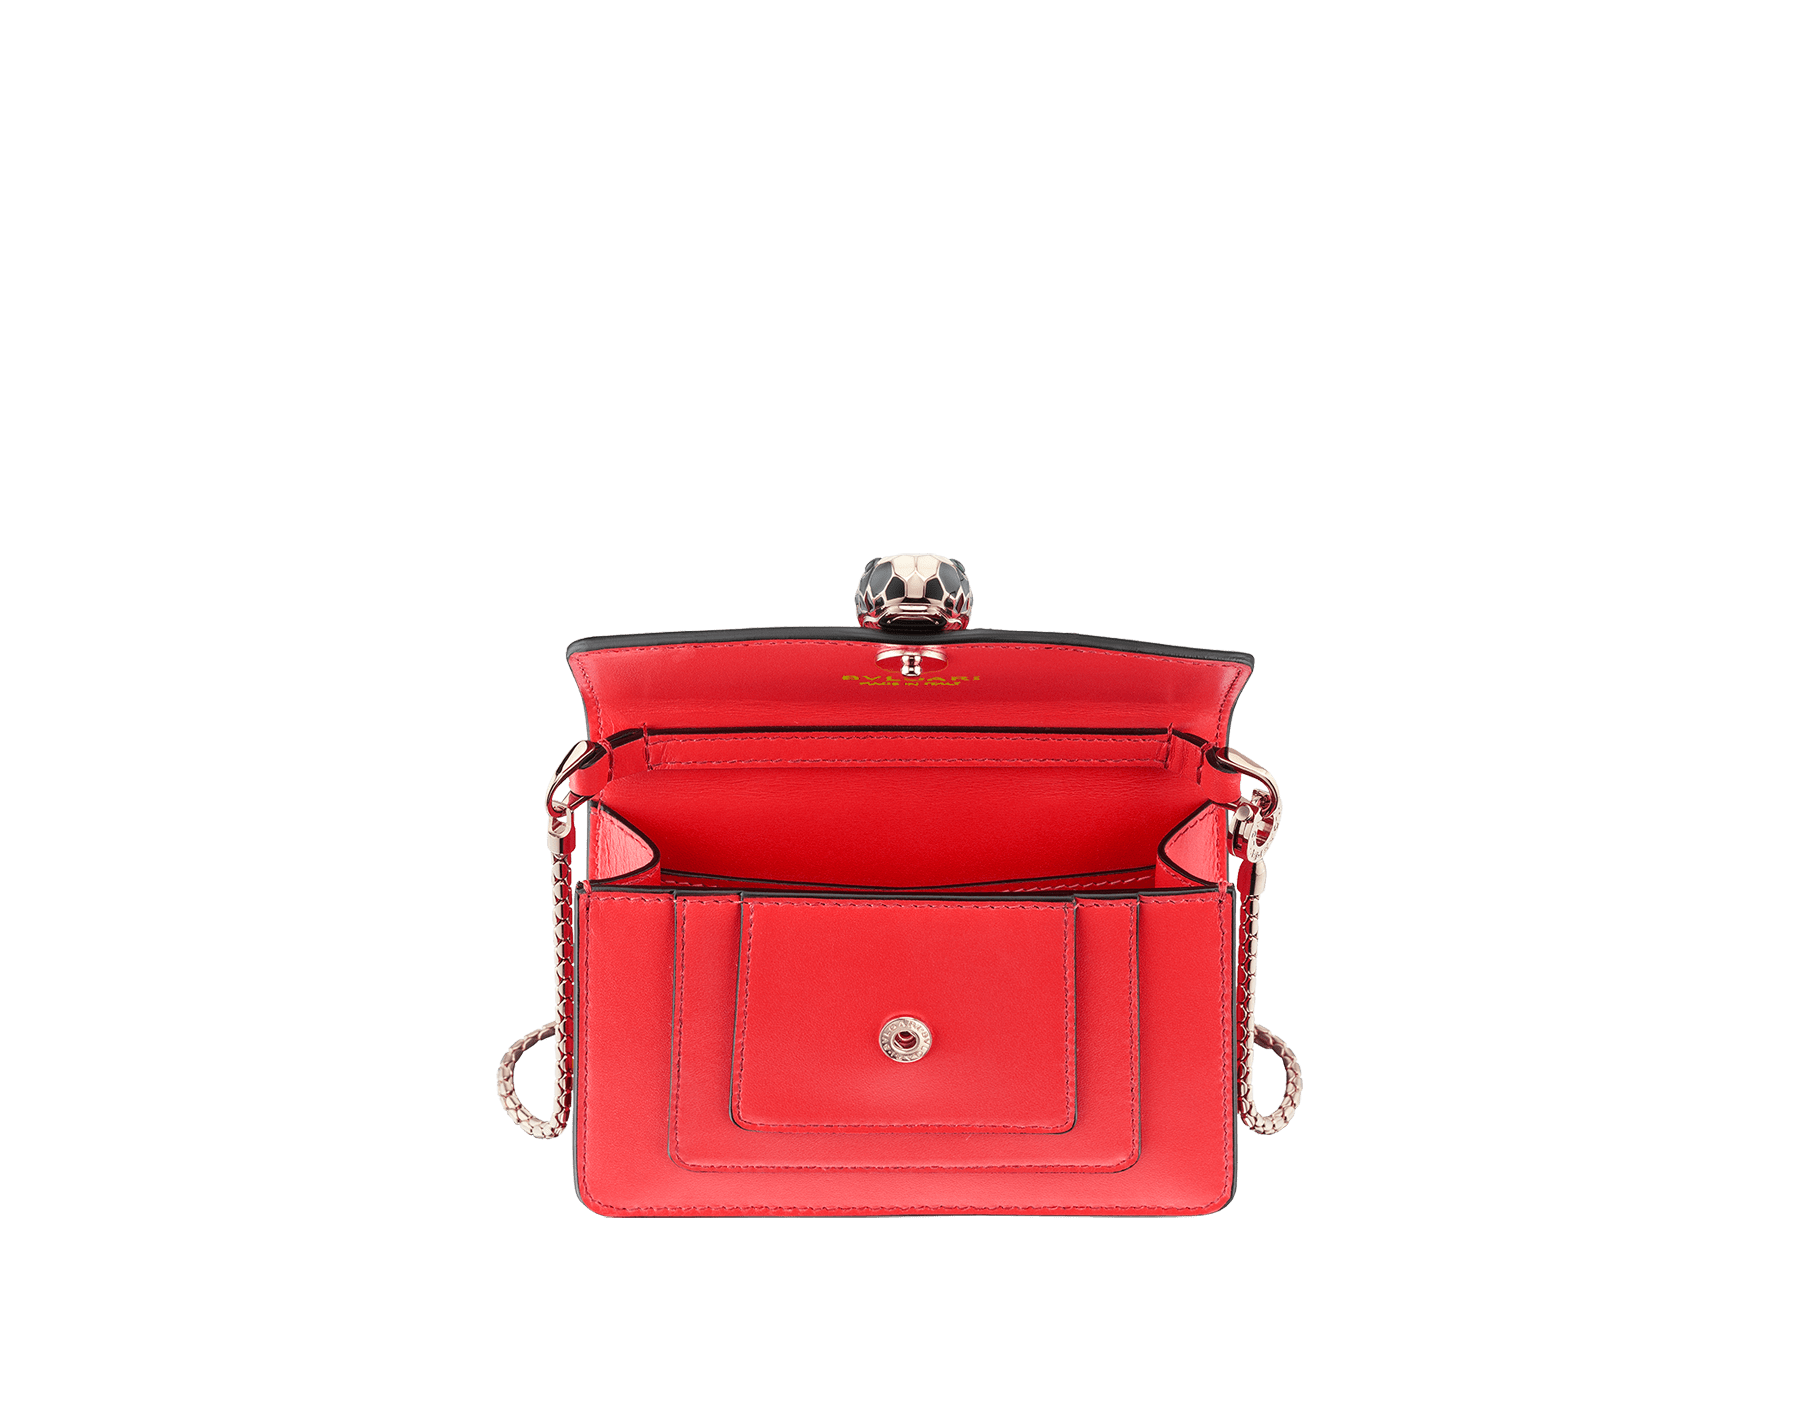 Serpenti Forever miniature bag charm in sea star coral calf leather with berry tourmaline calf leather lining. Iconic light gold plated brass snakehead stud closure enameled in black and white, and finished with green enamel eyes. 288370 image 2